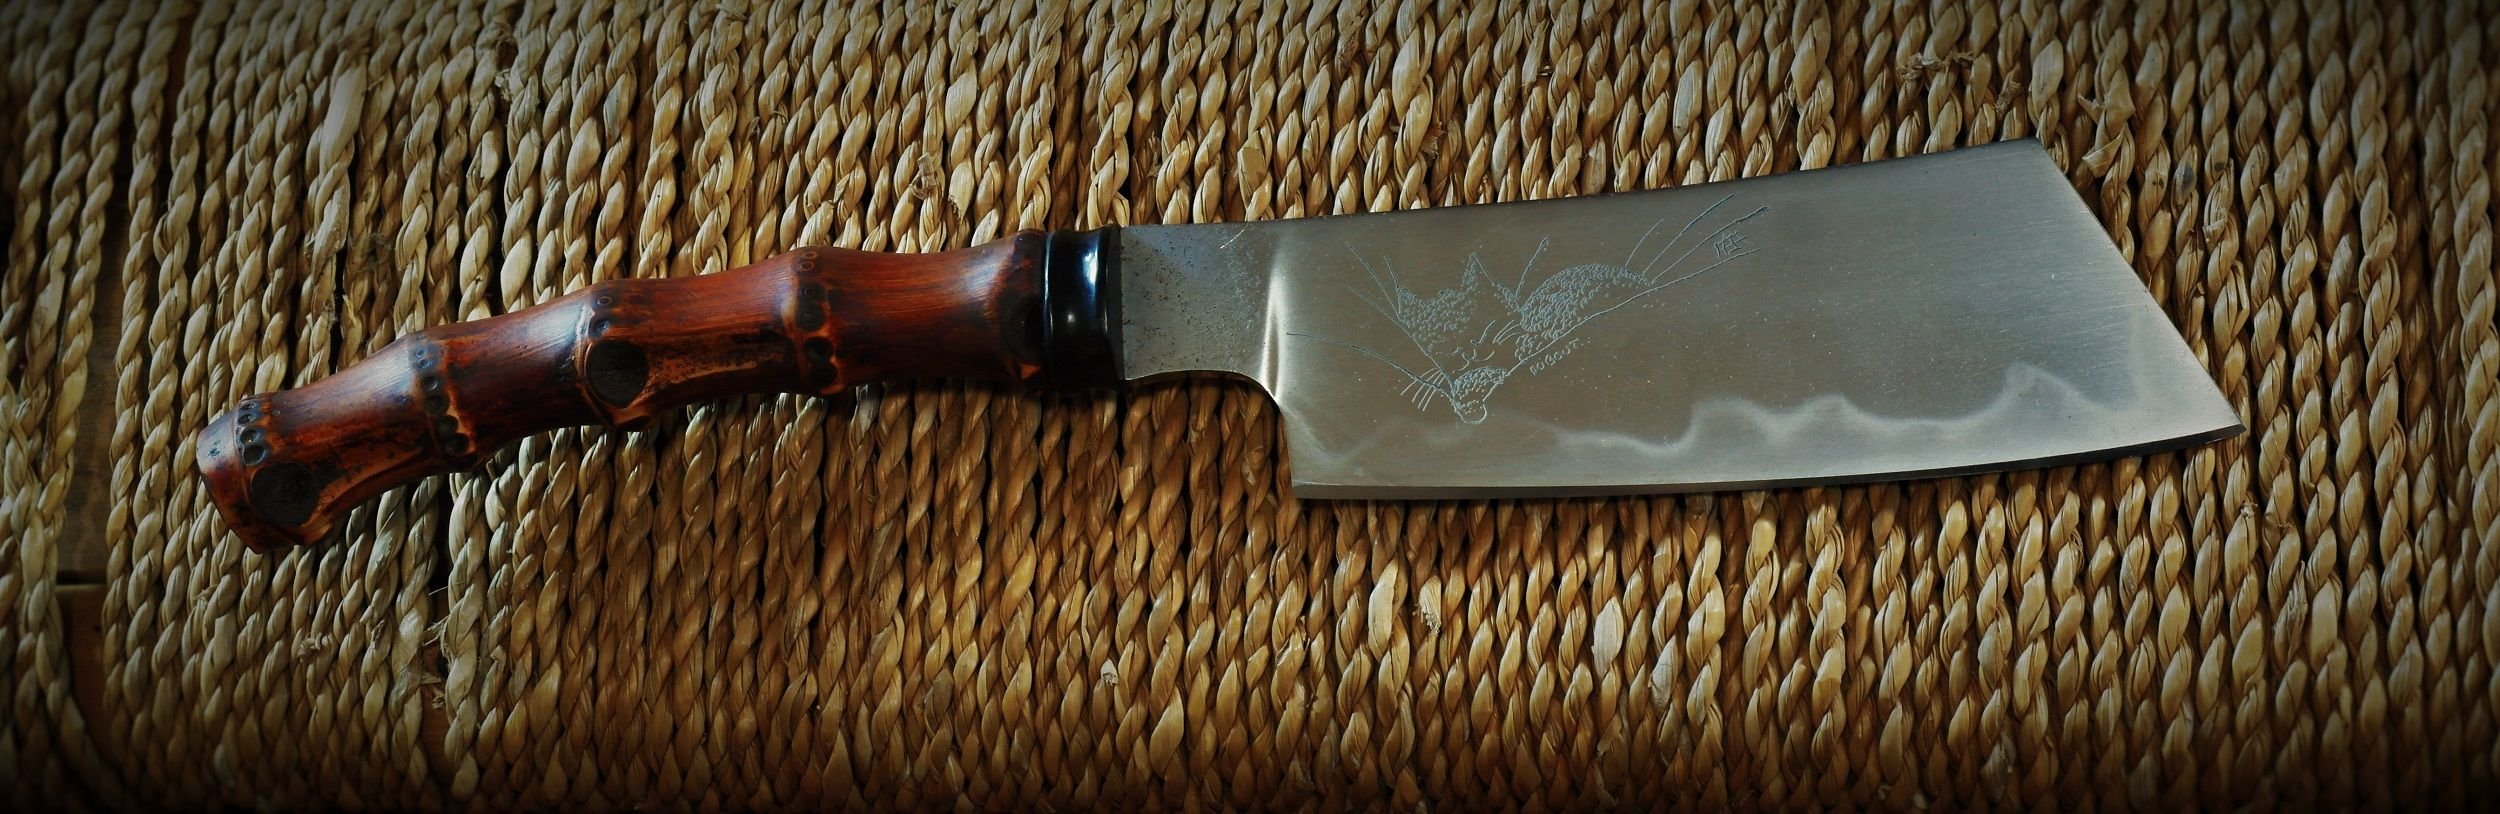 Bamboo root and buffalo horn handle with a clay quenched W2 blade. Engraving based on a drawing by Albert Dubout.